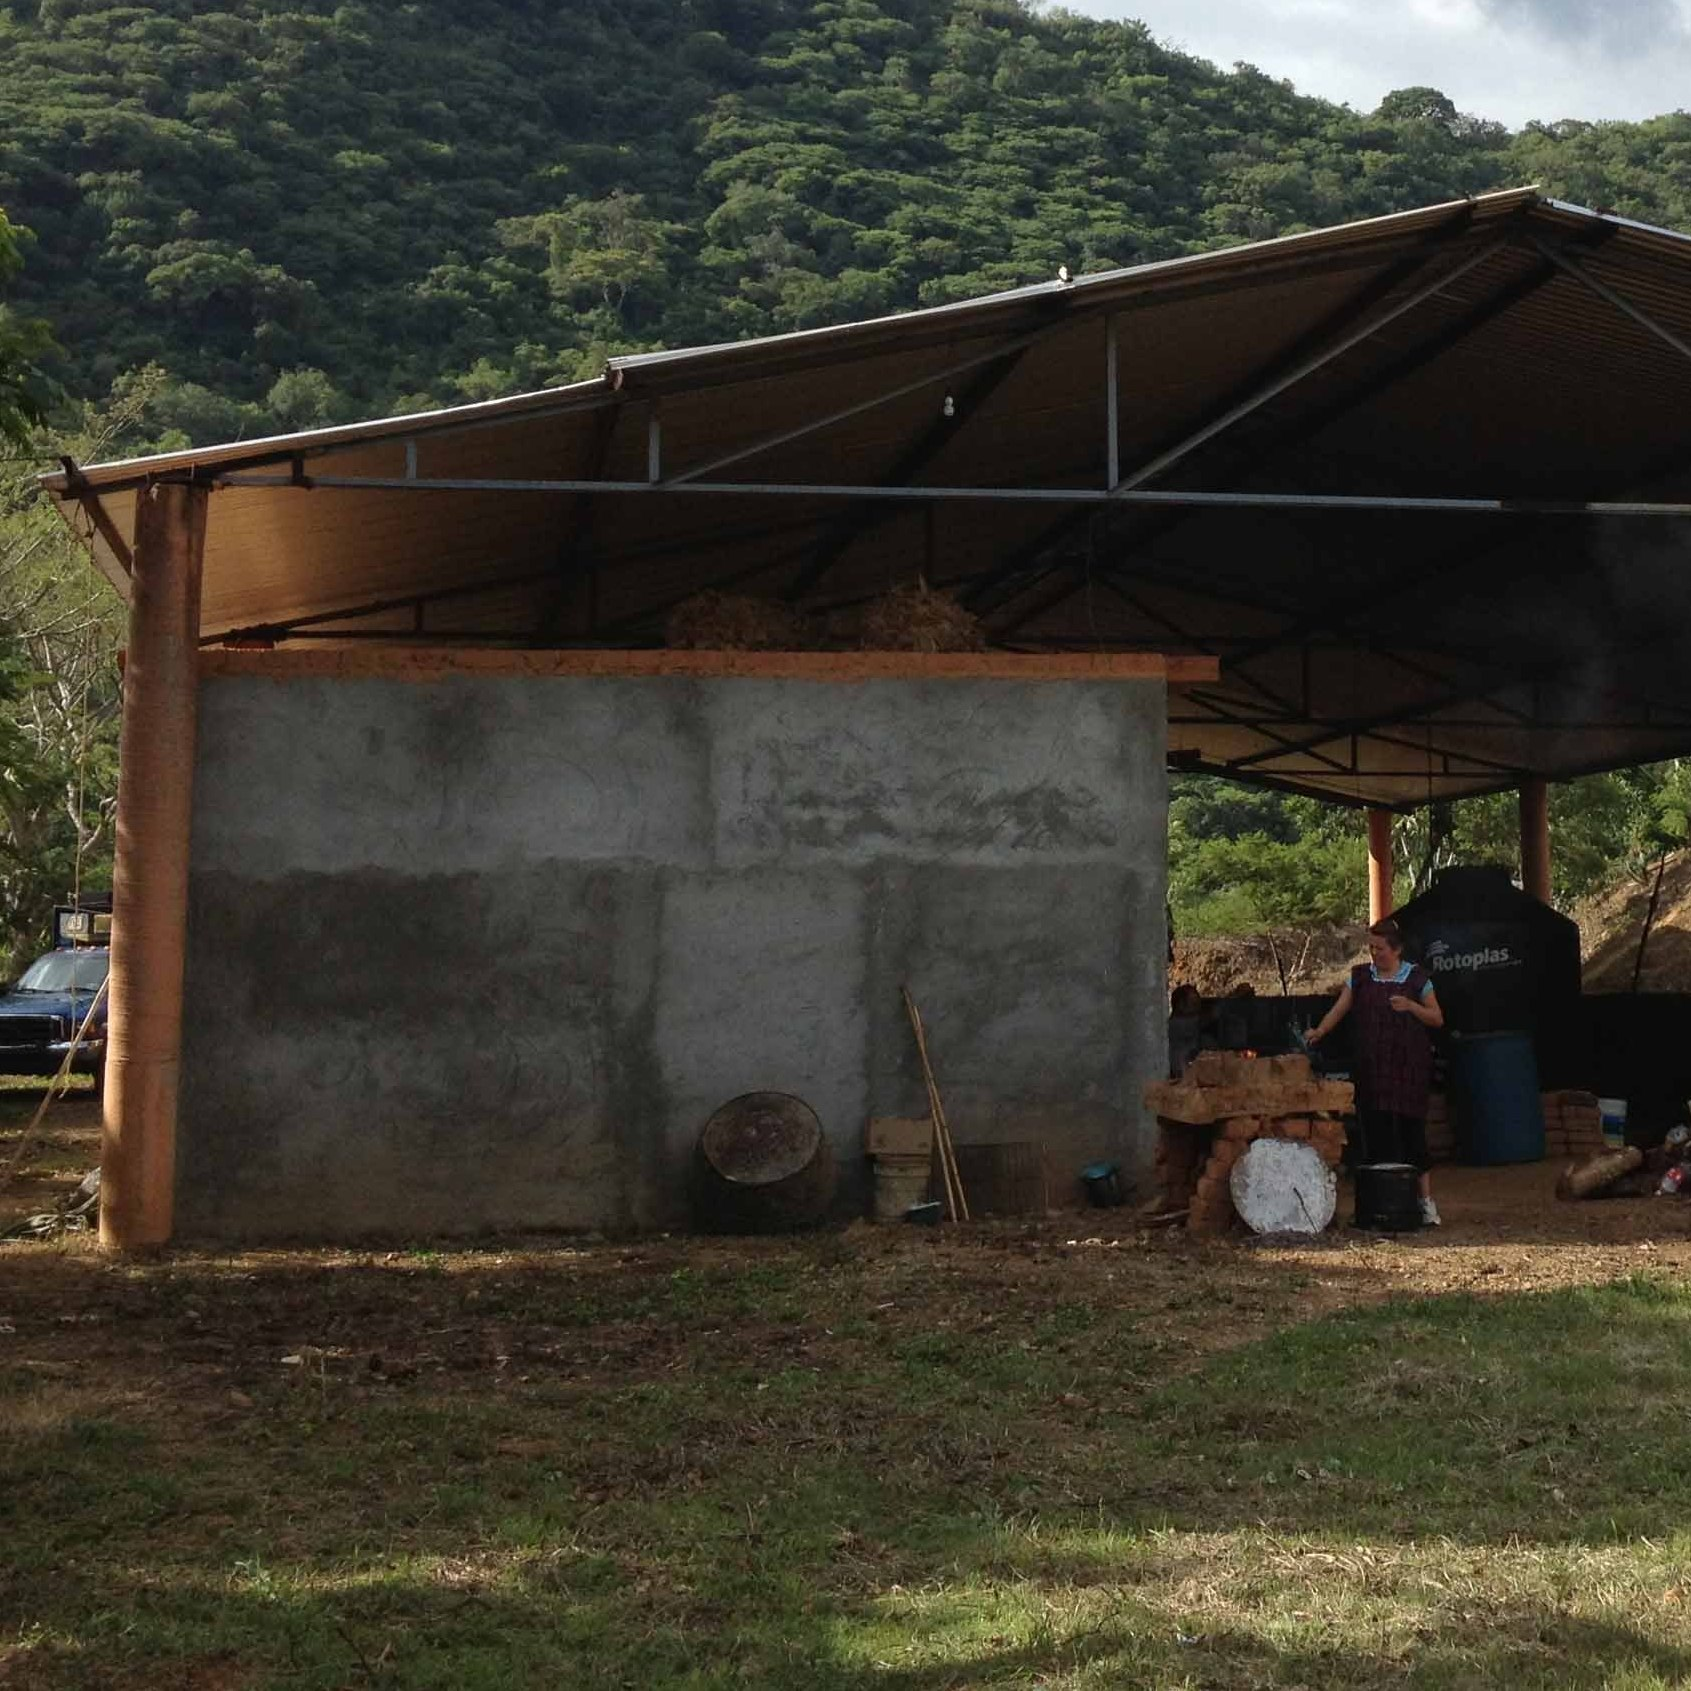 The 'palenque,' the workshop where they make mezcal, is at the bottom of the slopes the agave plants grow on.